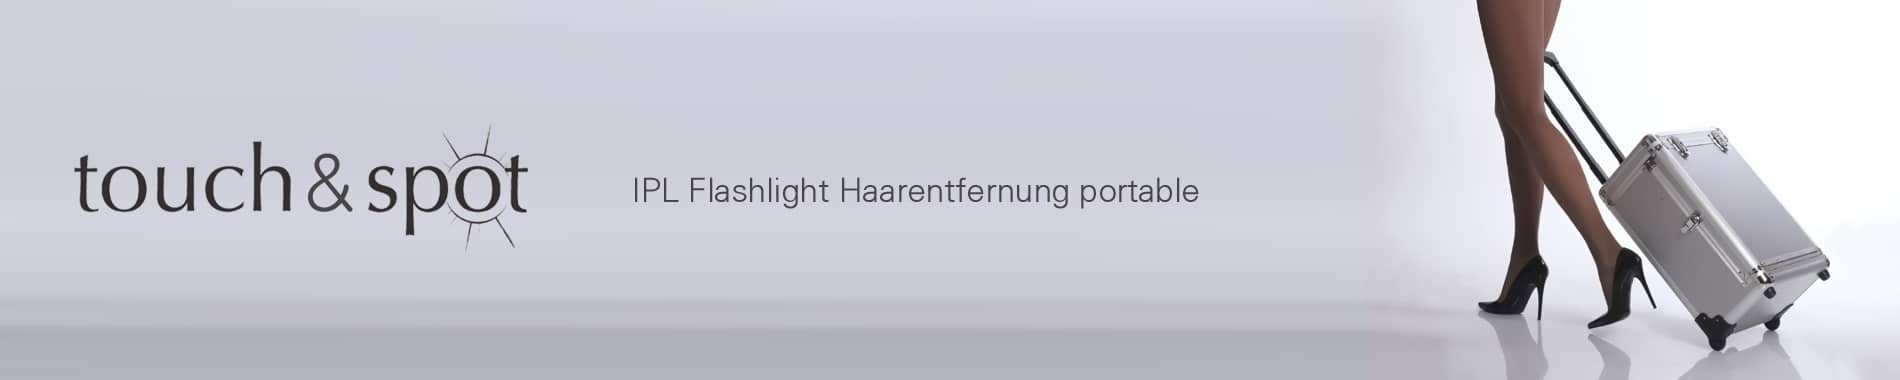 IPL Flashlight dauerhafte Haarentfernung portable